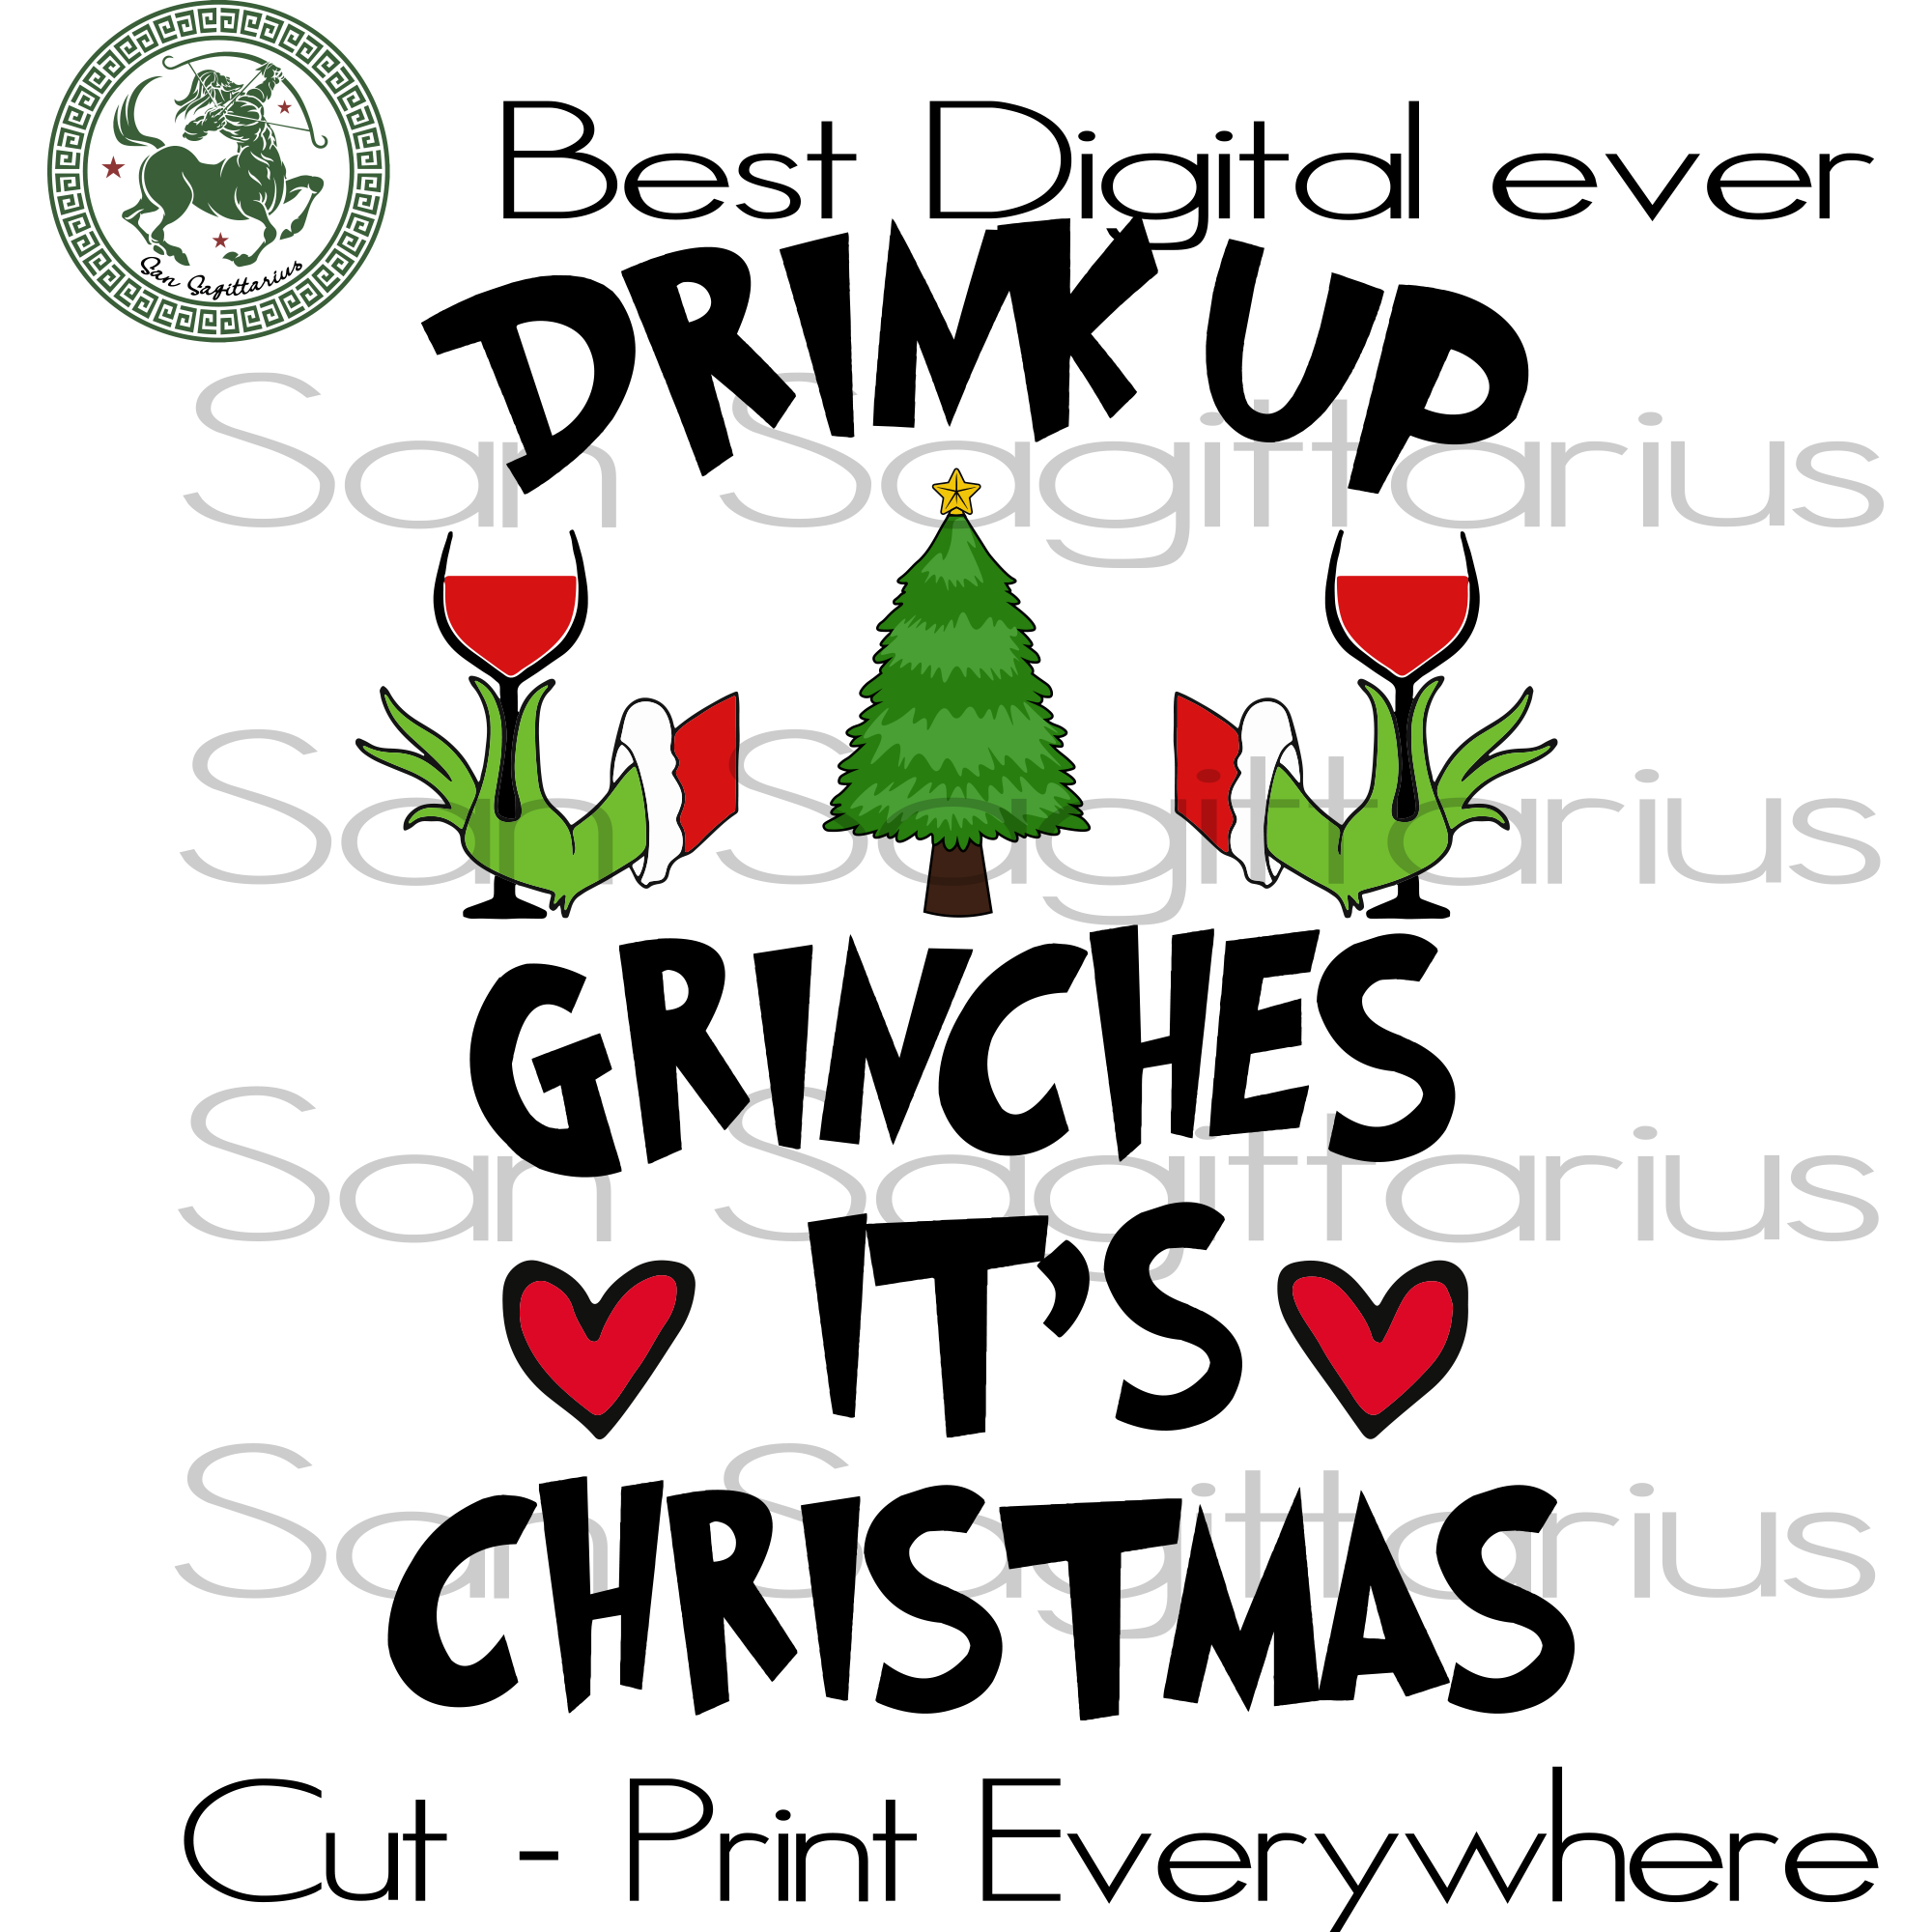 Drink Up Grinches It's Christmas, Grinches Svg, Grinches Shirt, Grinches Gift, Christmas Svg, Christmas Gift, Drink Svg, Christmas Tree, Christmas Tree Svg, Christmas Decor, Love Christmas, C